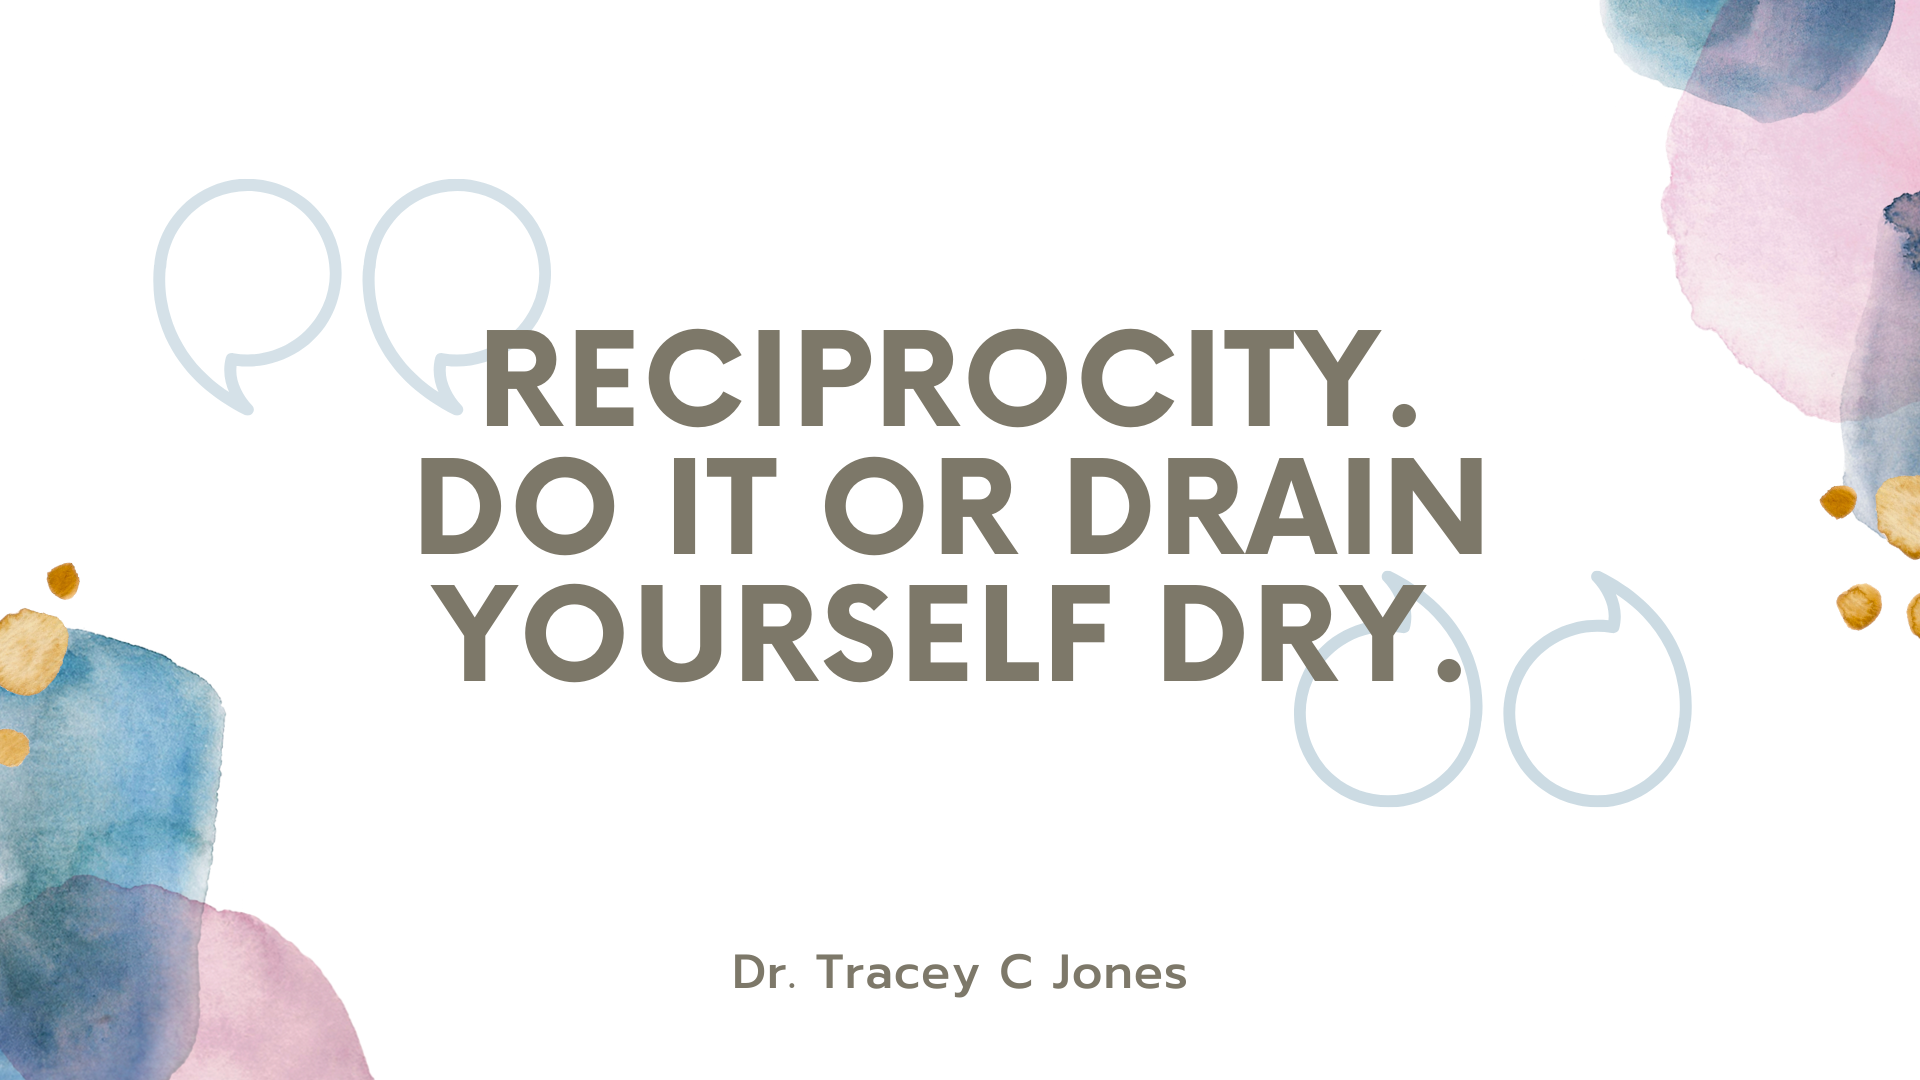 reciprocity. do it or drain yourself dry. dr. tracey c jones